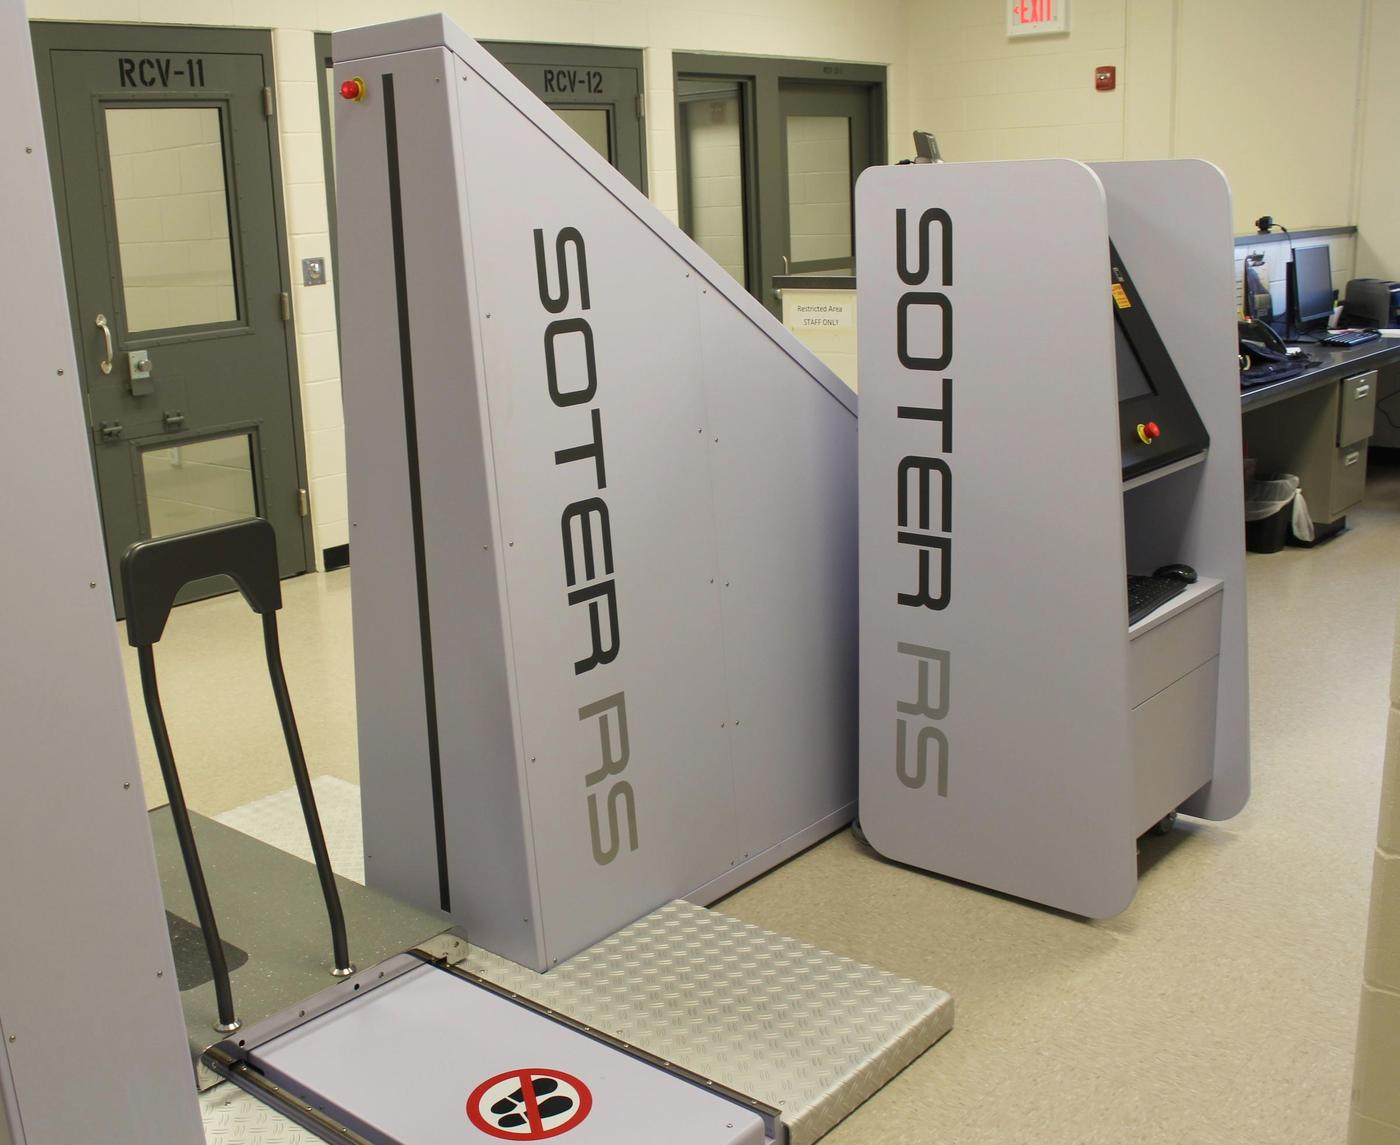 NY to allow body scanners in prisons | NCPR News